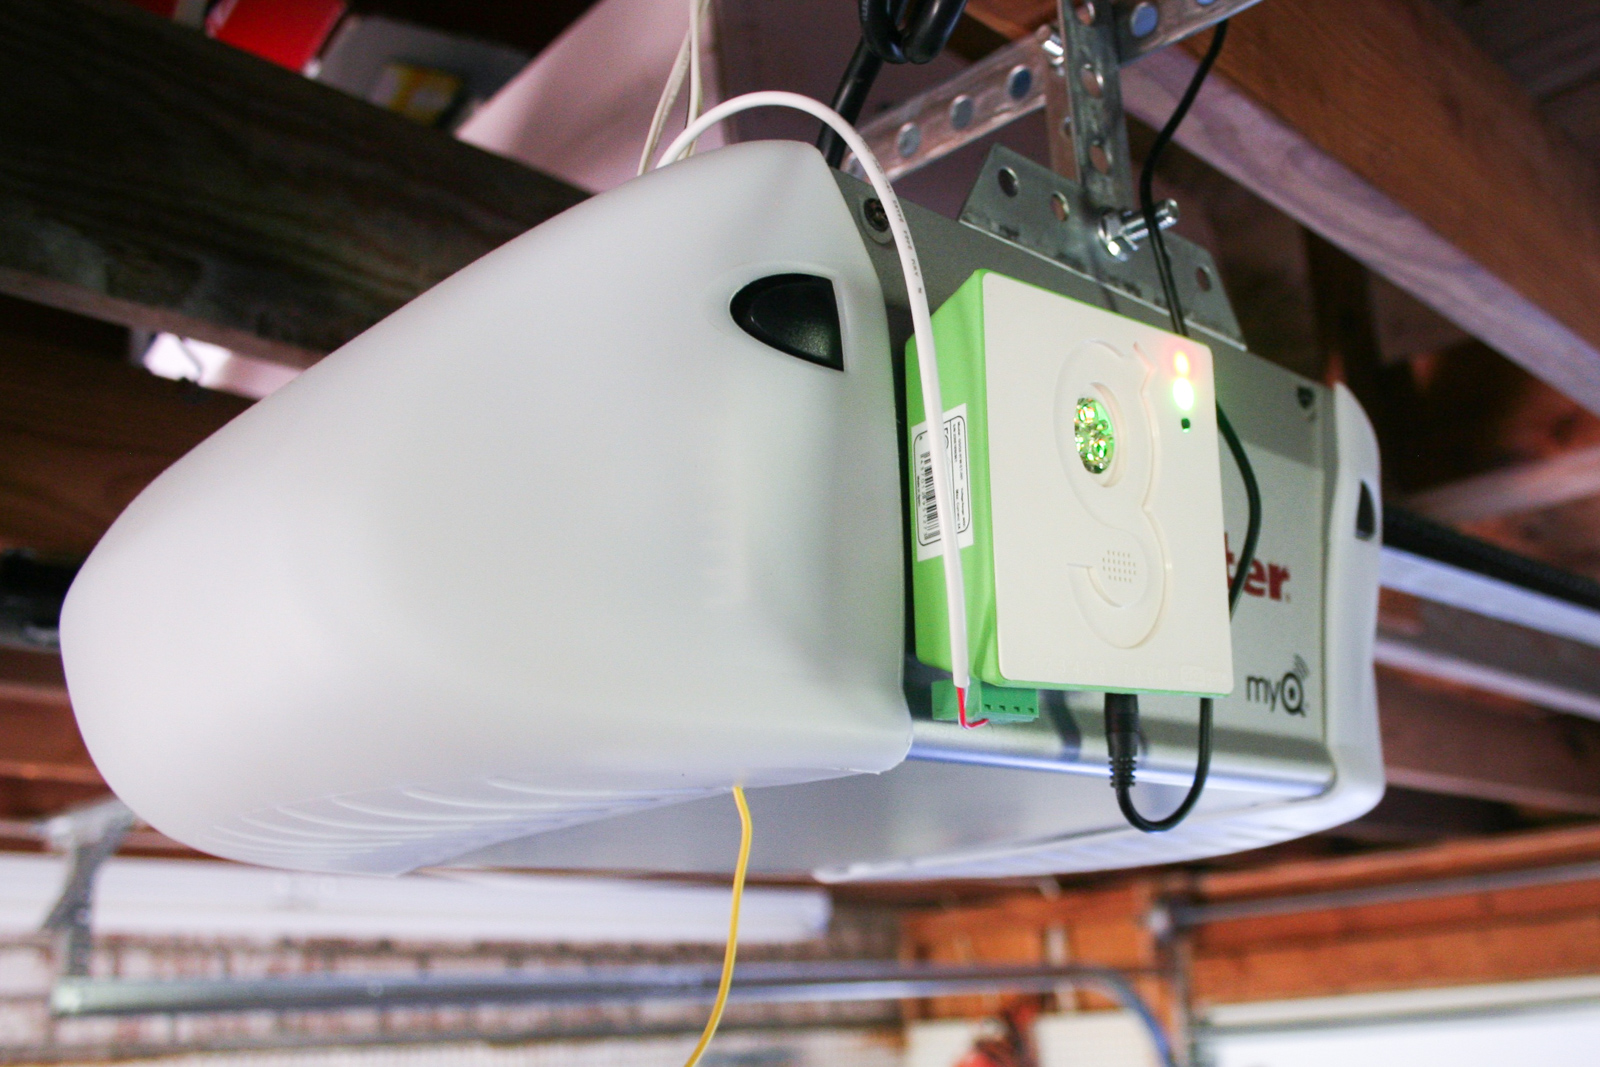 Ordinaire The Gogogate2 Is A Small, Lightweight Device That Attaches To The Side Of  Your Garage Door Opener. Photo: Jennifer Pattison Tuohy